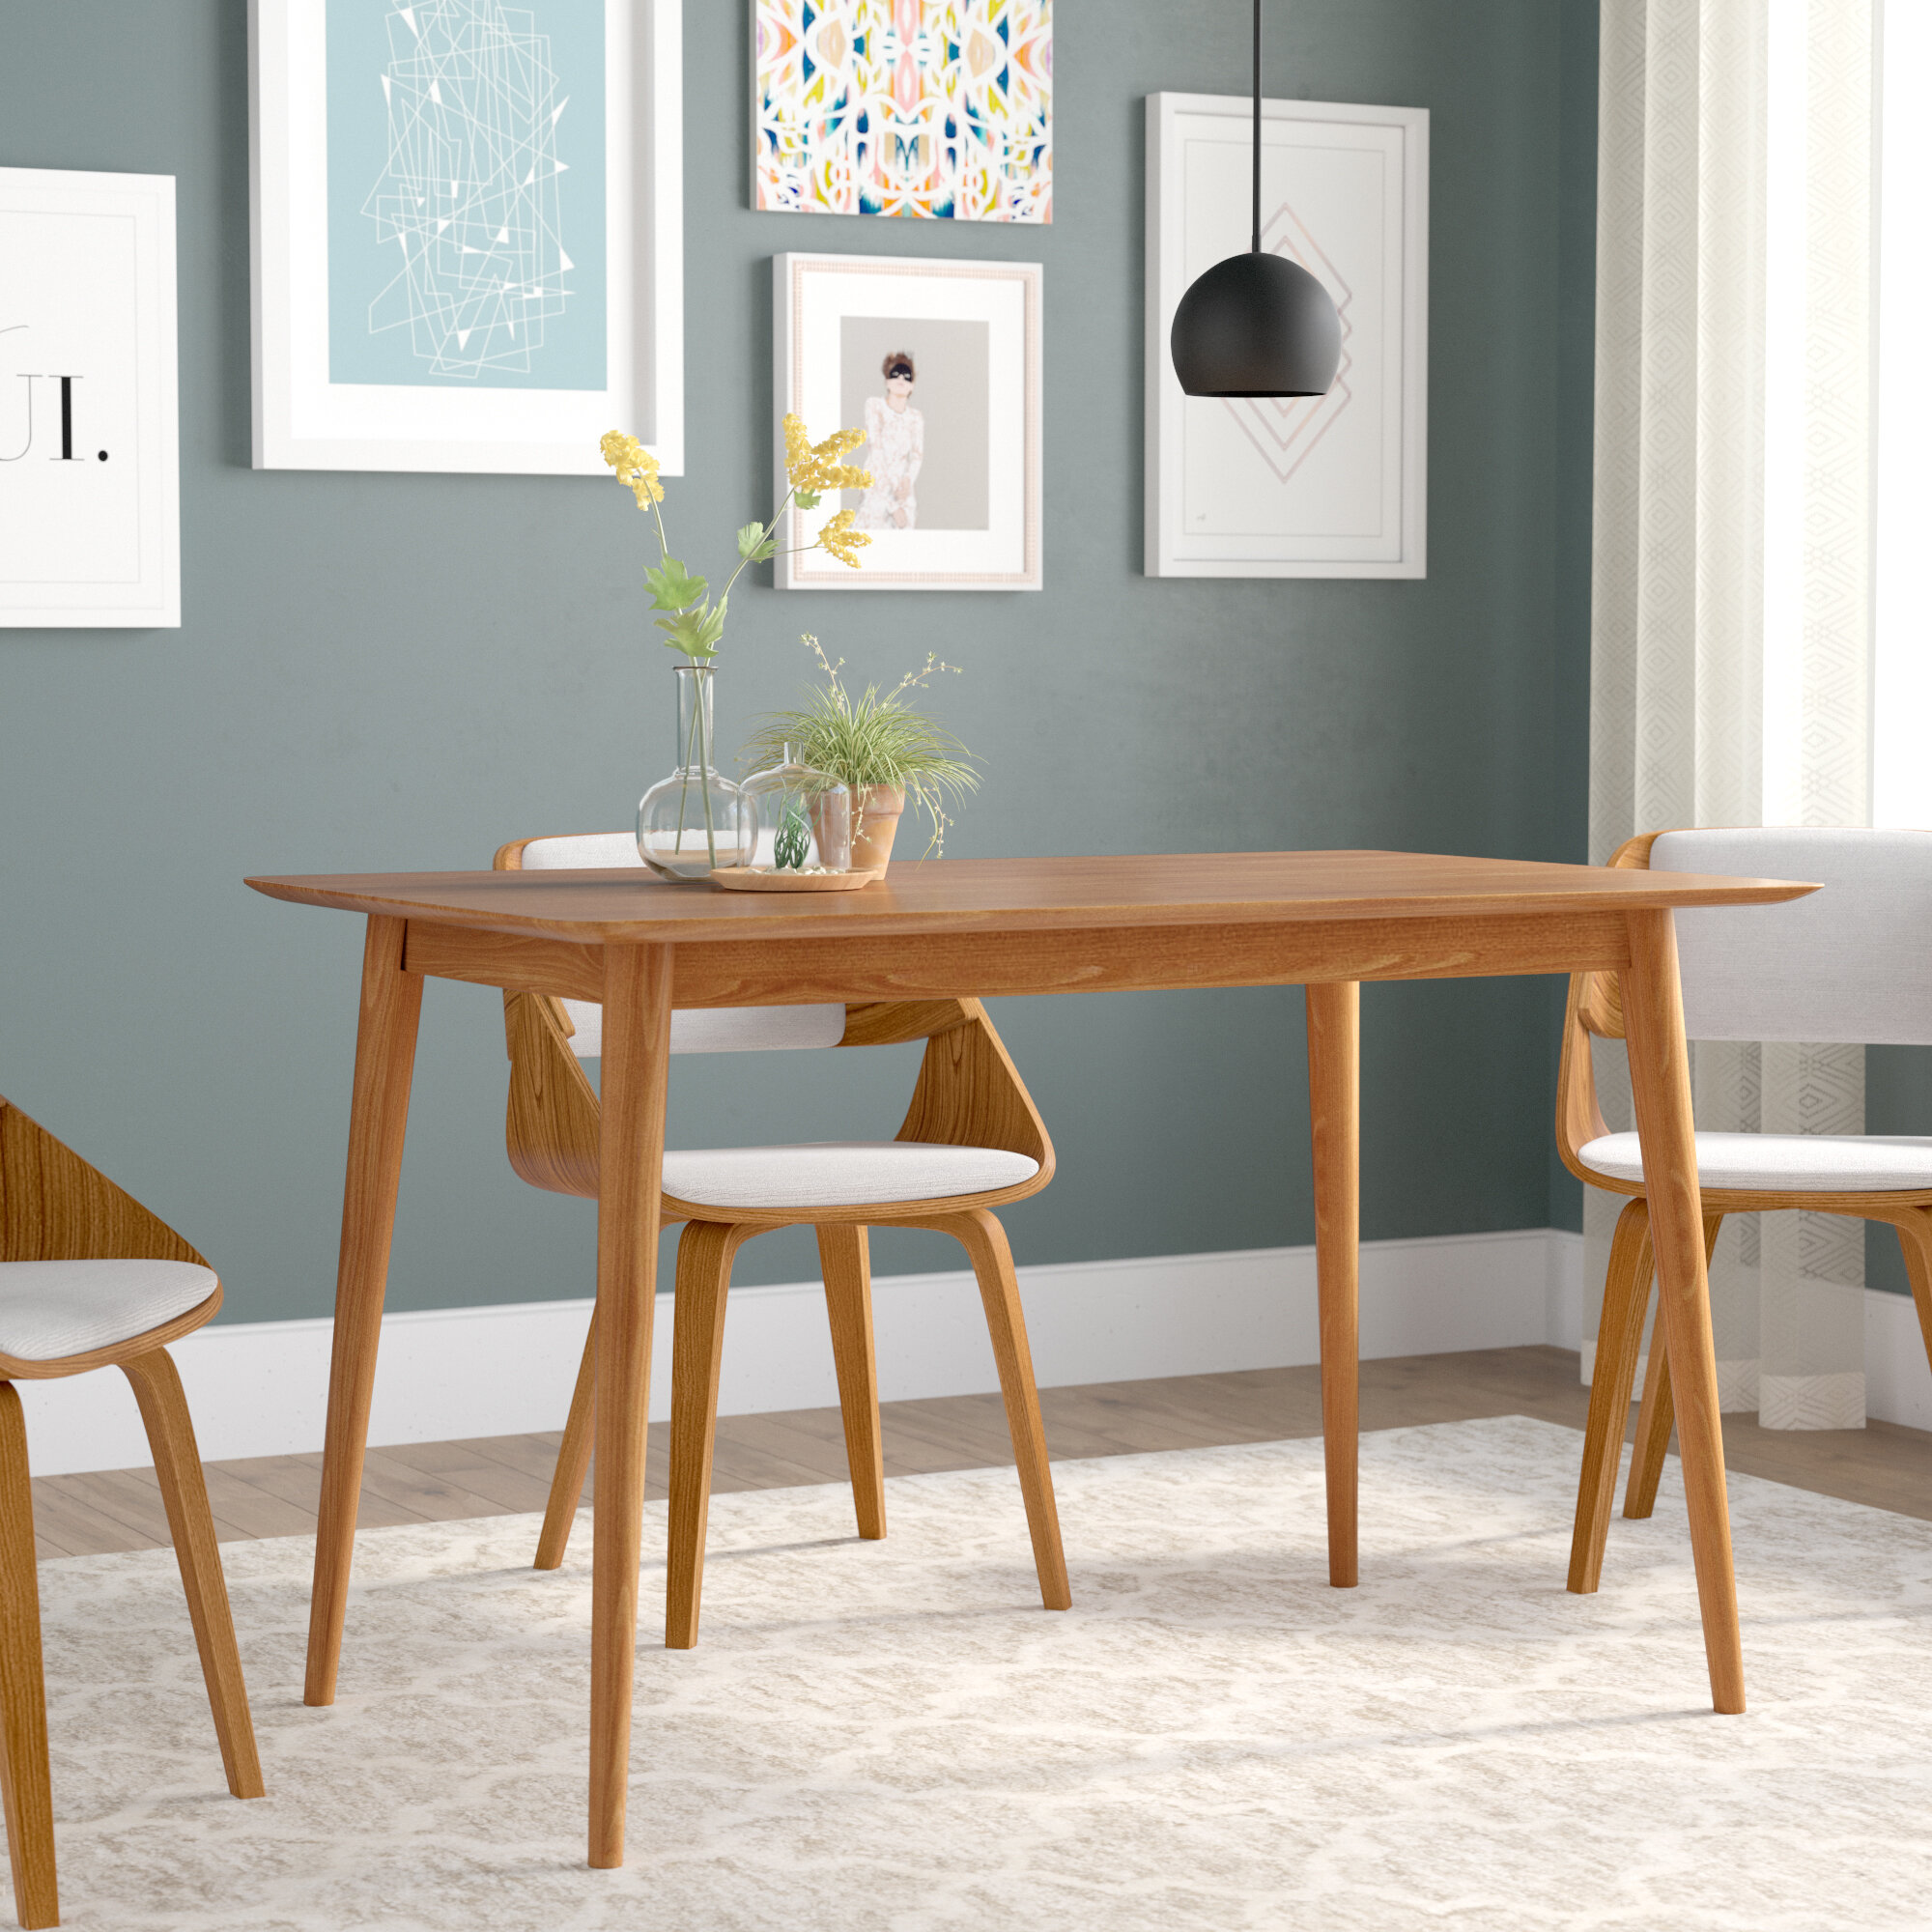 Astounding Kaylen Mid Century Modern Wood Dining Table Caraccident5 Cool Chair Designs And Ideas Caraccident5Info